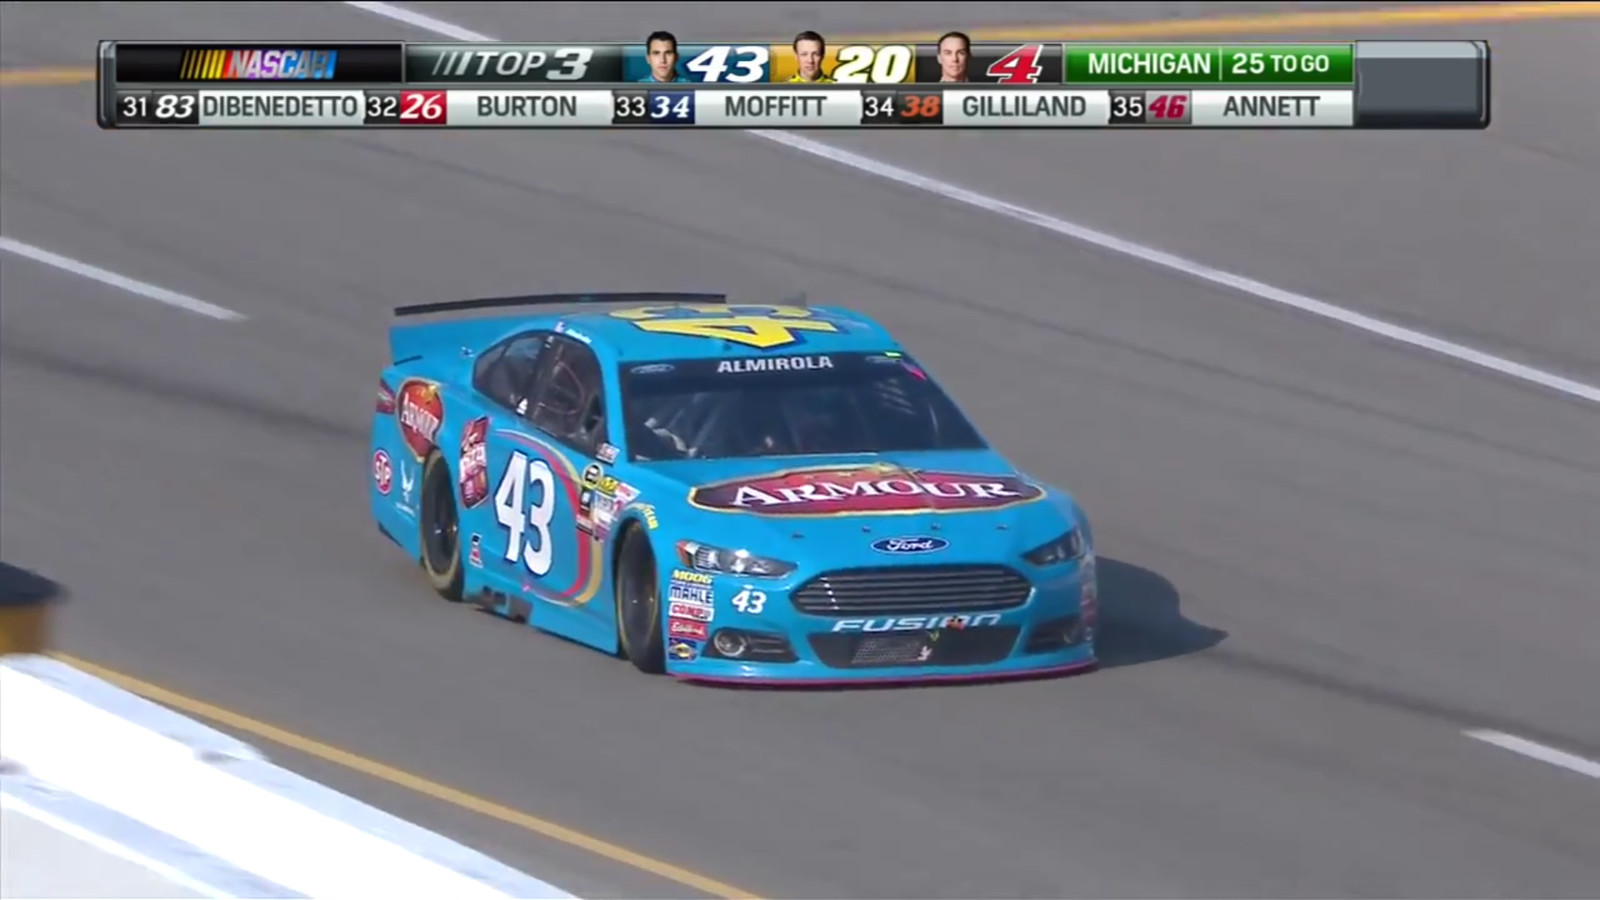 Almirola pitting the #43 Armour Ford Fusion. Screen capture from NBC's live broadcast of the Pure Michigan 400 on August 16th, 2015. (Credit: NBC Sports)